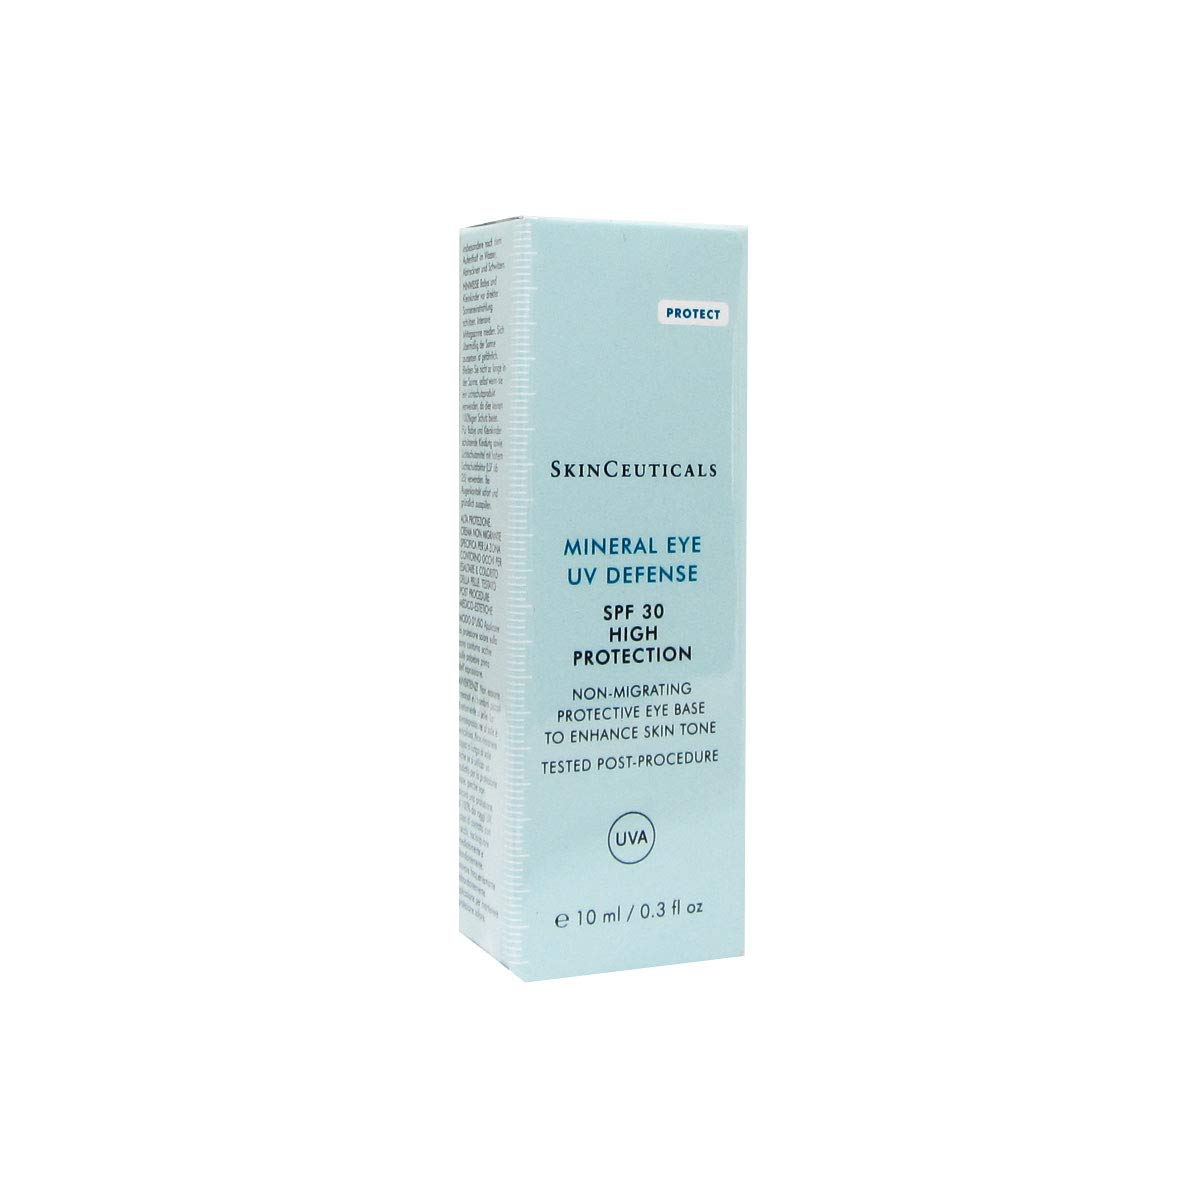 Skinceuticals Mineral Eye UV Defense SPF30 10ml Sun Protection Eye